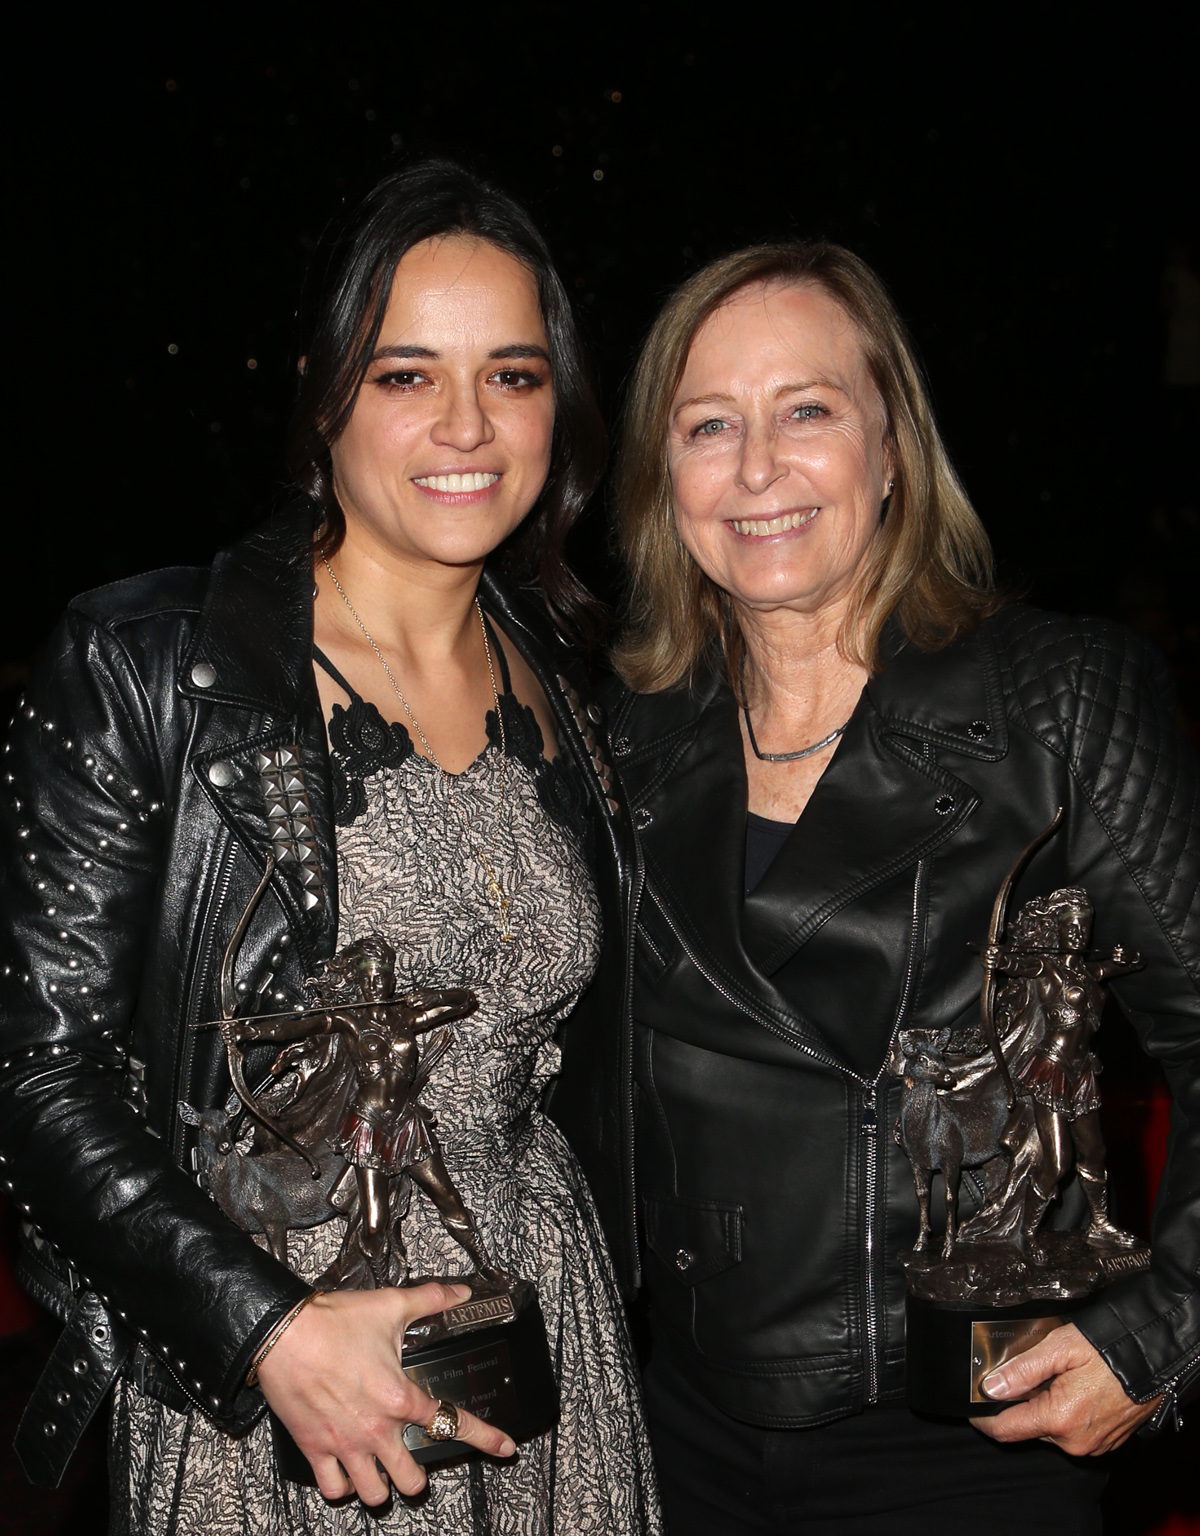 BEVERLY HILLS, CA - APRIL 26: Michelle Rodriguez, Debbie Evans, at the 2018 Artemis Awards Gala at the Ahrya Fine Arts Theater in Beverly Hills, California on April 26, 2018. Credit: Faye Sadou/MediaPunch